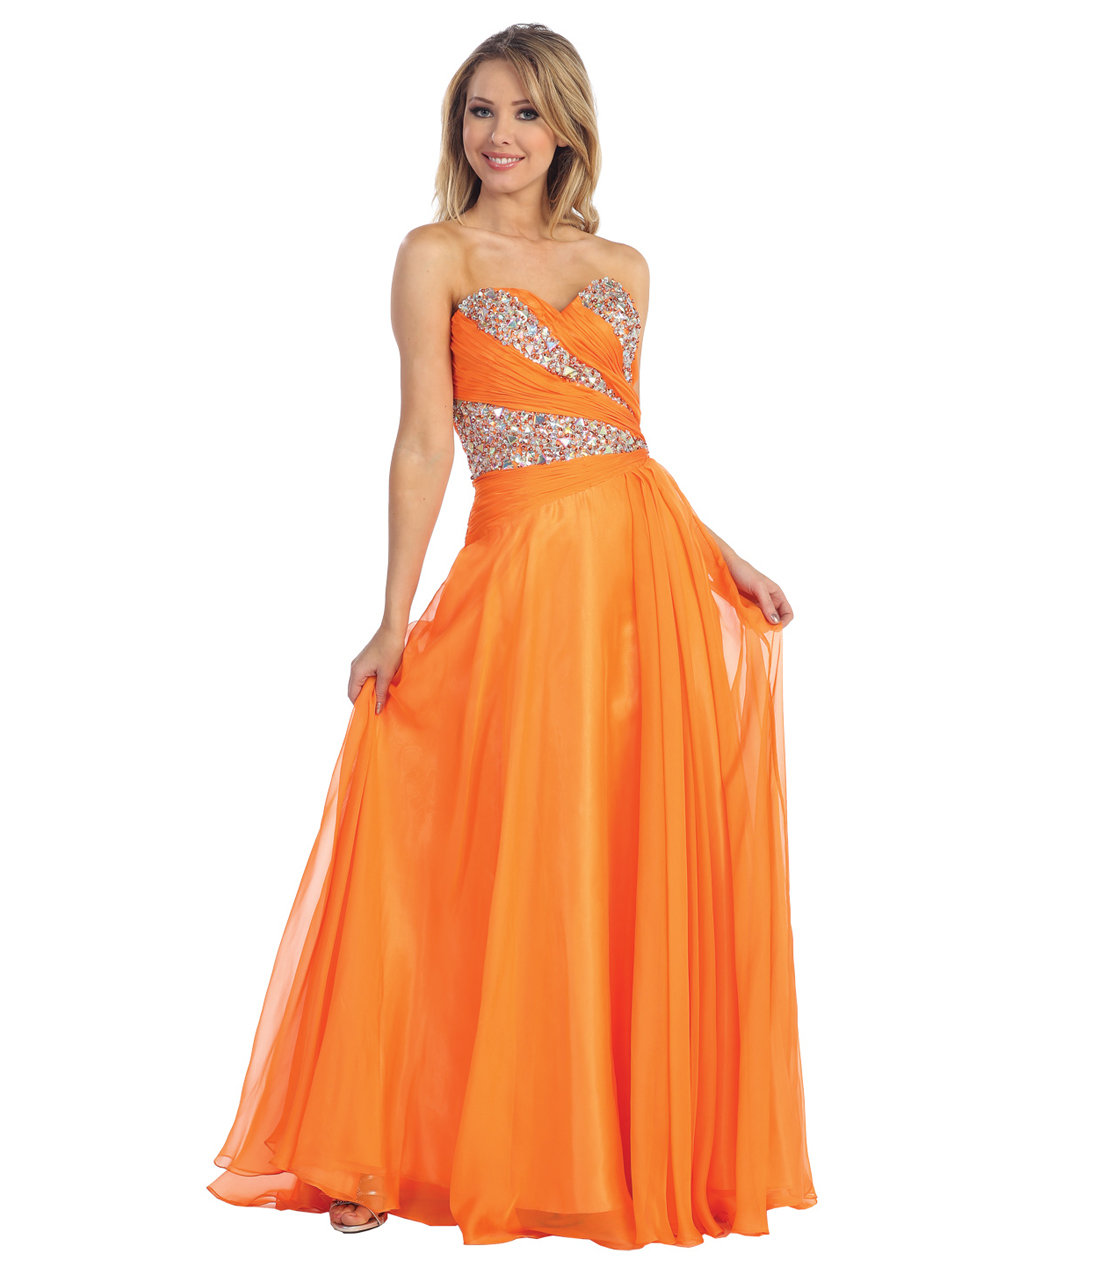 Plus size prom dresses in orange county ca eligent prom for Cheap wedding dresses in orange county